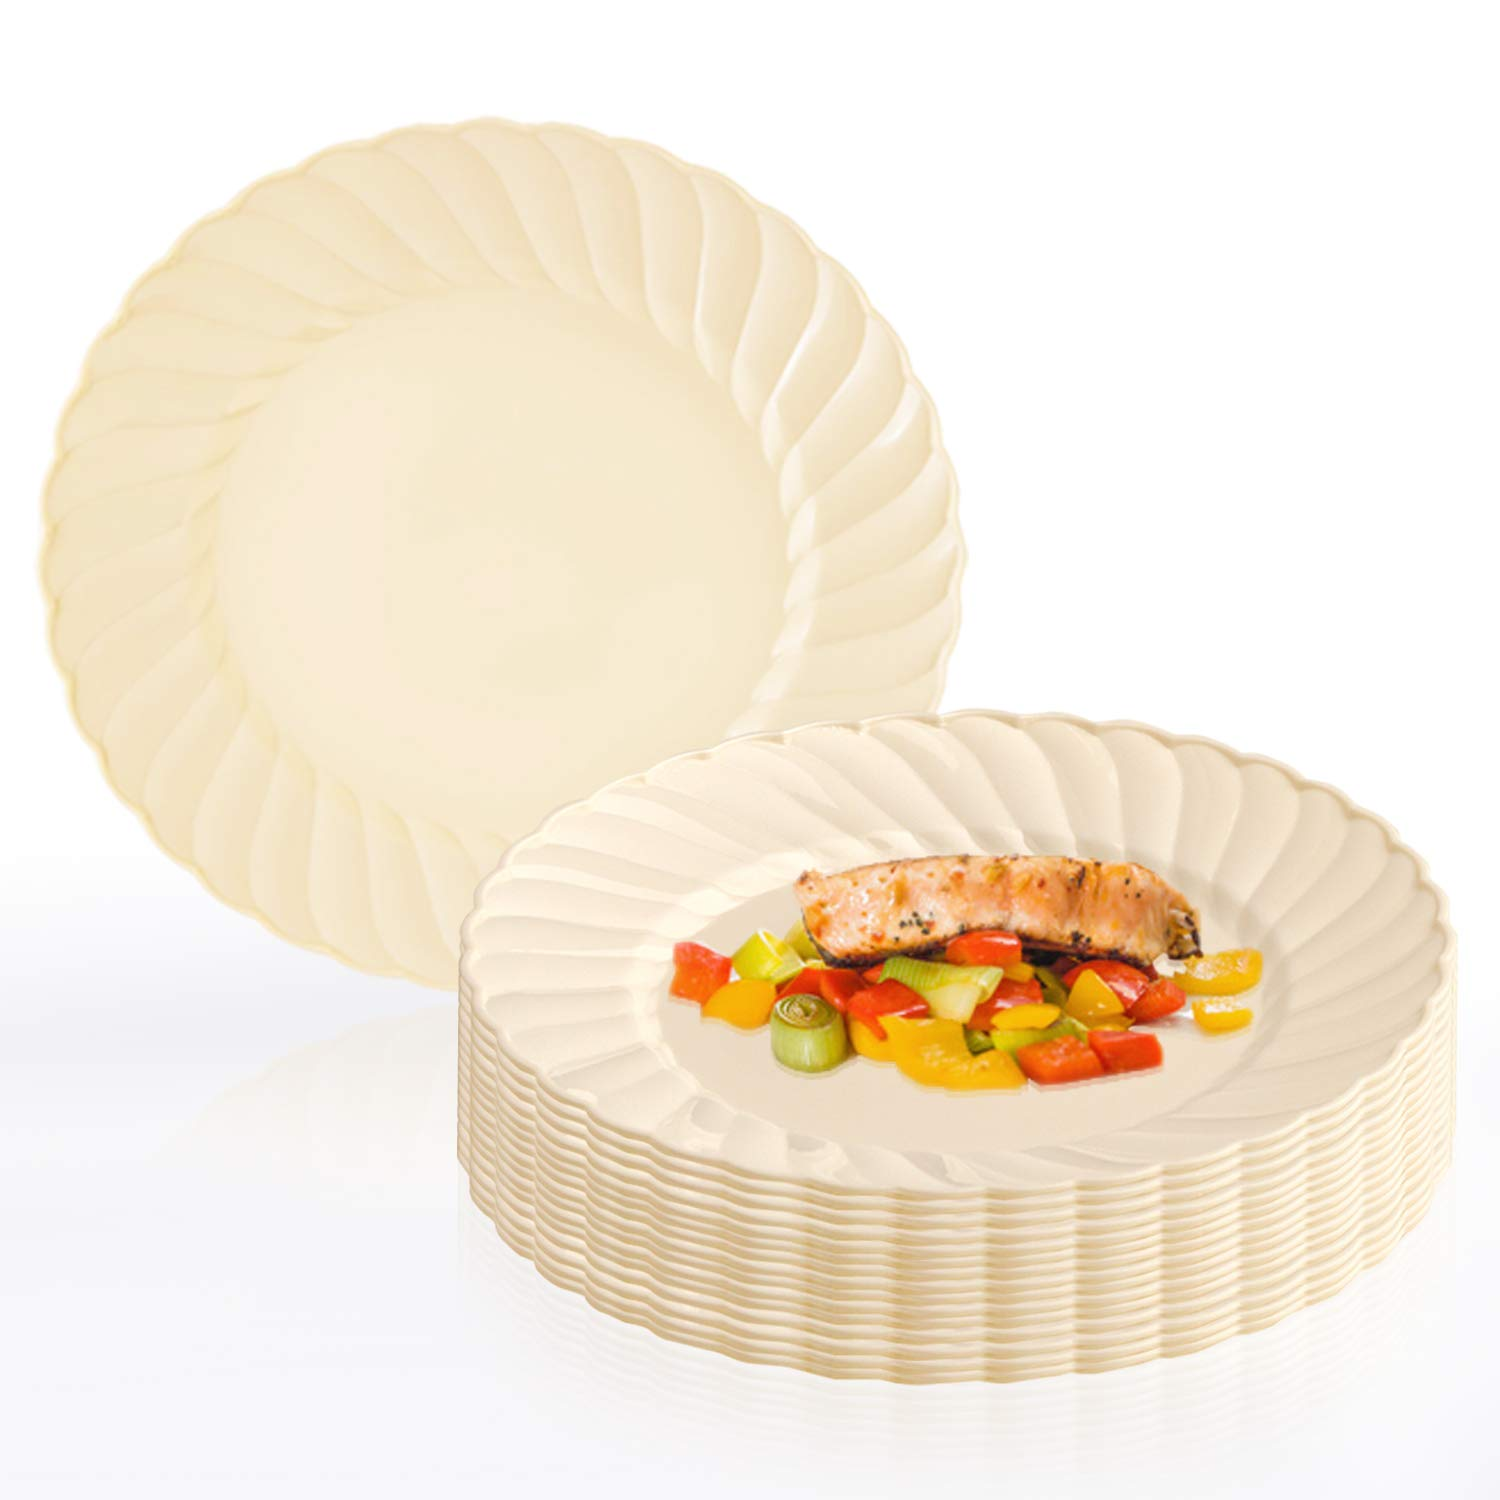 """Elegant Disposable Plastic Dessert Plates 180 Pcs - 7.5"""" Heavy Duty Flared Ivory Salad Plates - Reusable Fancy Appetizer Cake Plates - Bulk Party Supplies For Wedding, Easter, Birthday & All Occasions"""